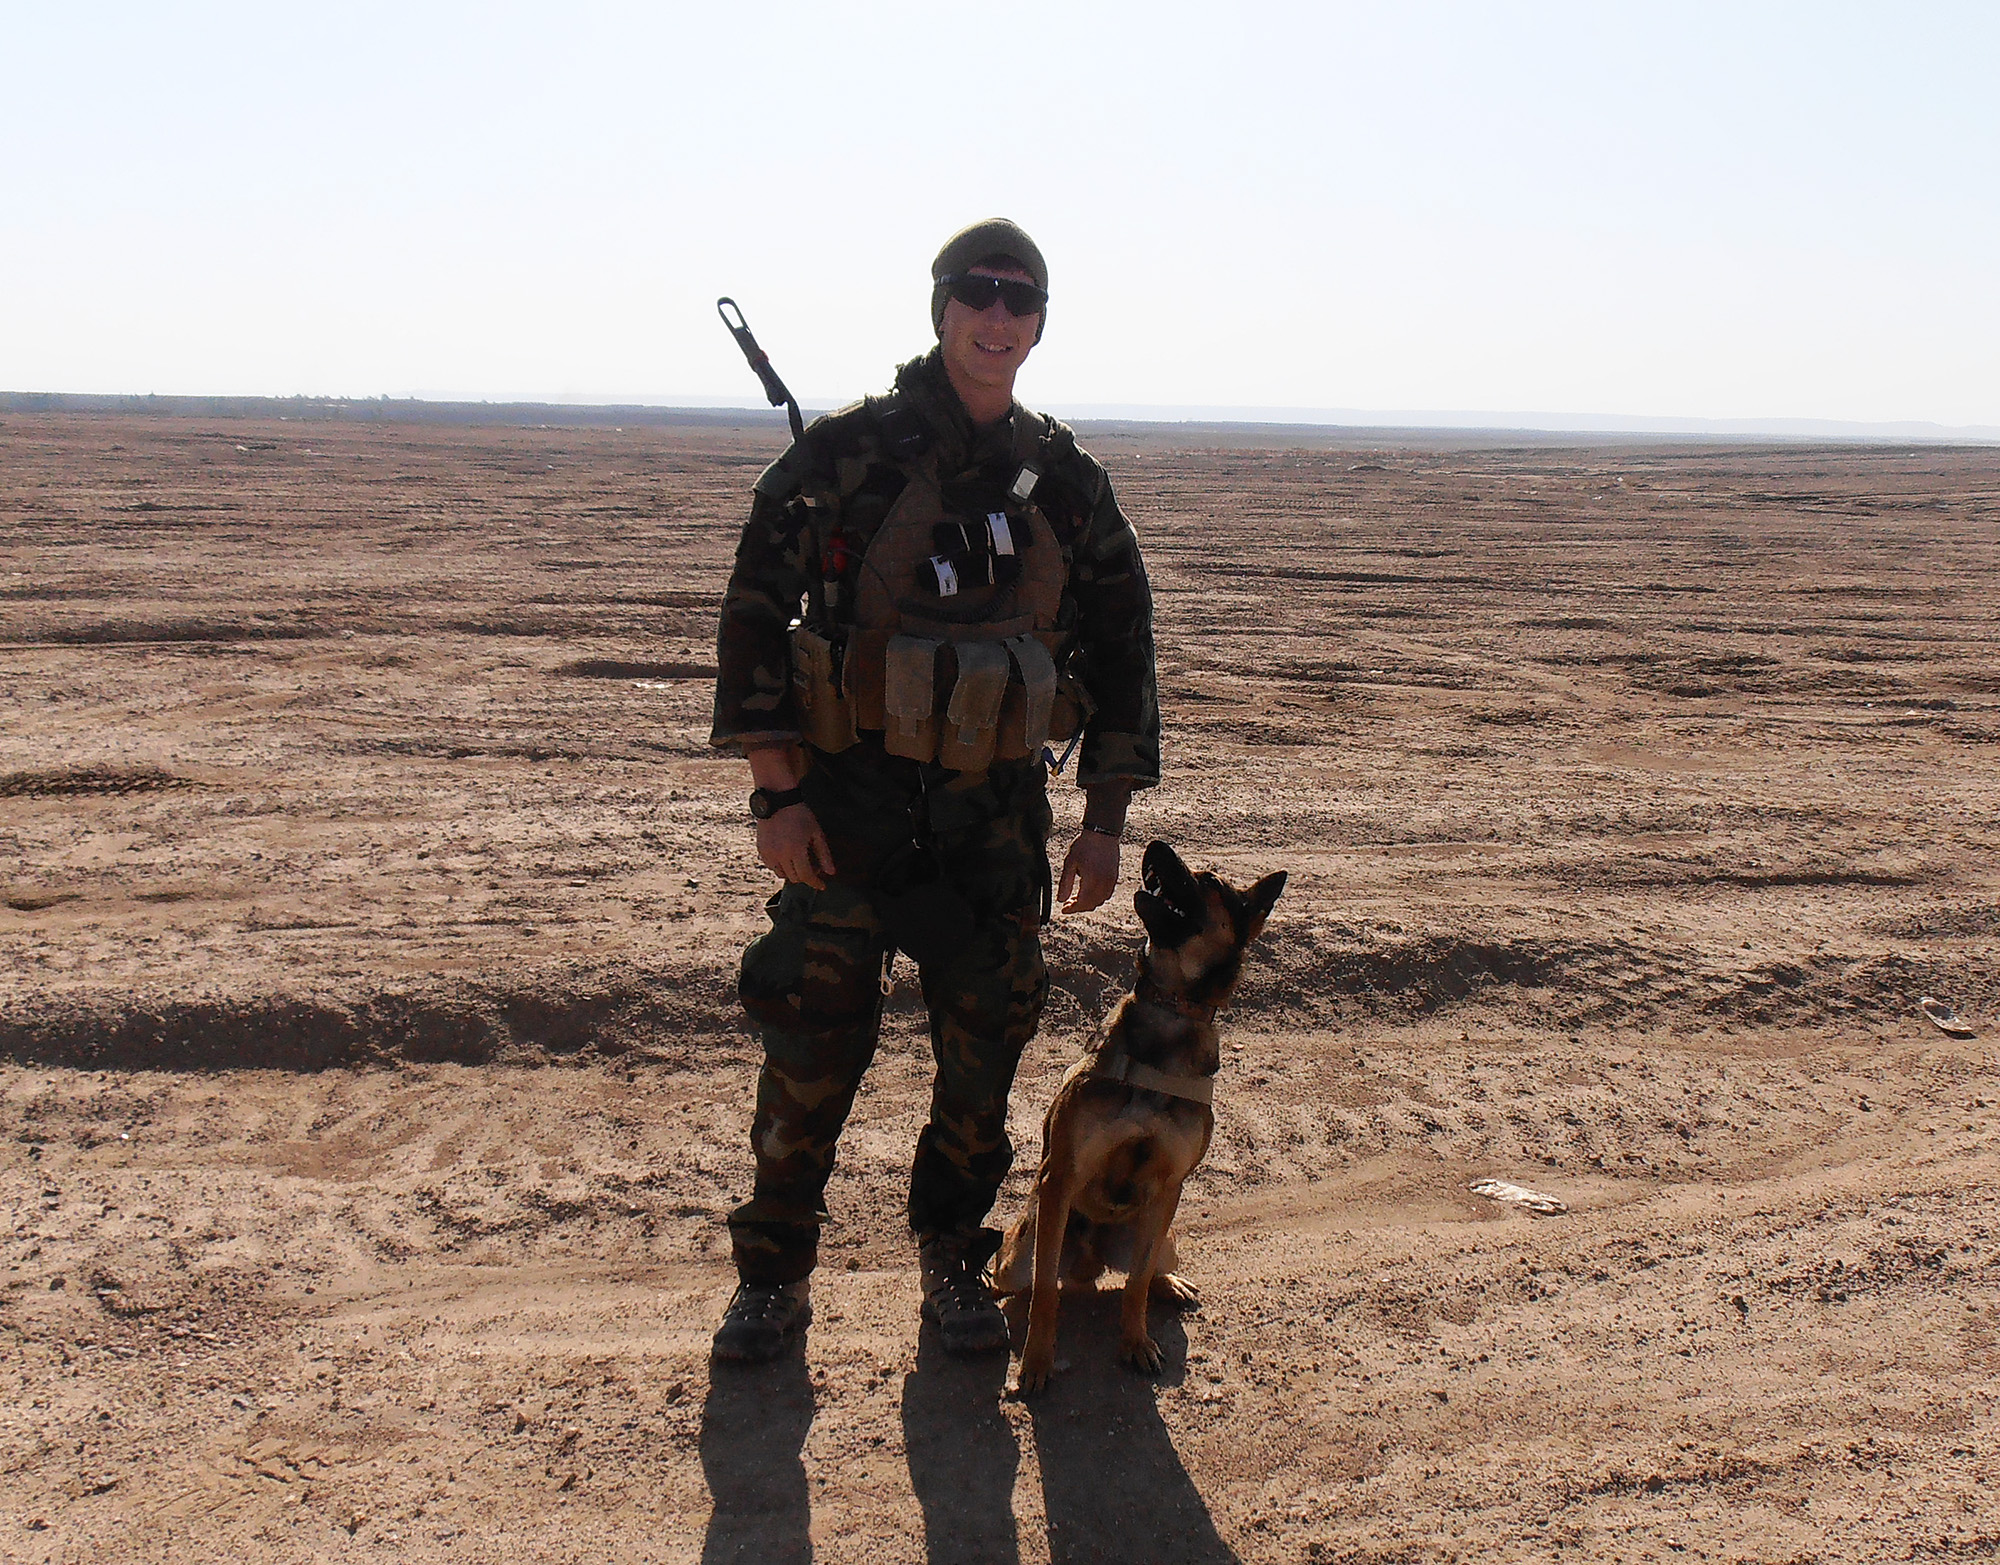 U.S. Marine Corporal Keaton G. Coffey, 22, of Boring, Oregon, assigned to the 1st Law Enforcement Battalion, 1st Marine Headquarters Group, 1st Marine Expeditionary Force, based in Camp Pendleton, California, was killed on May 24, 2012 while conducting combat operations in Helmand province, Afghanistan. He is survived by his fiancee Brittany Dygert and his parents Grant and Inger.